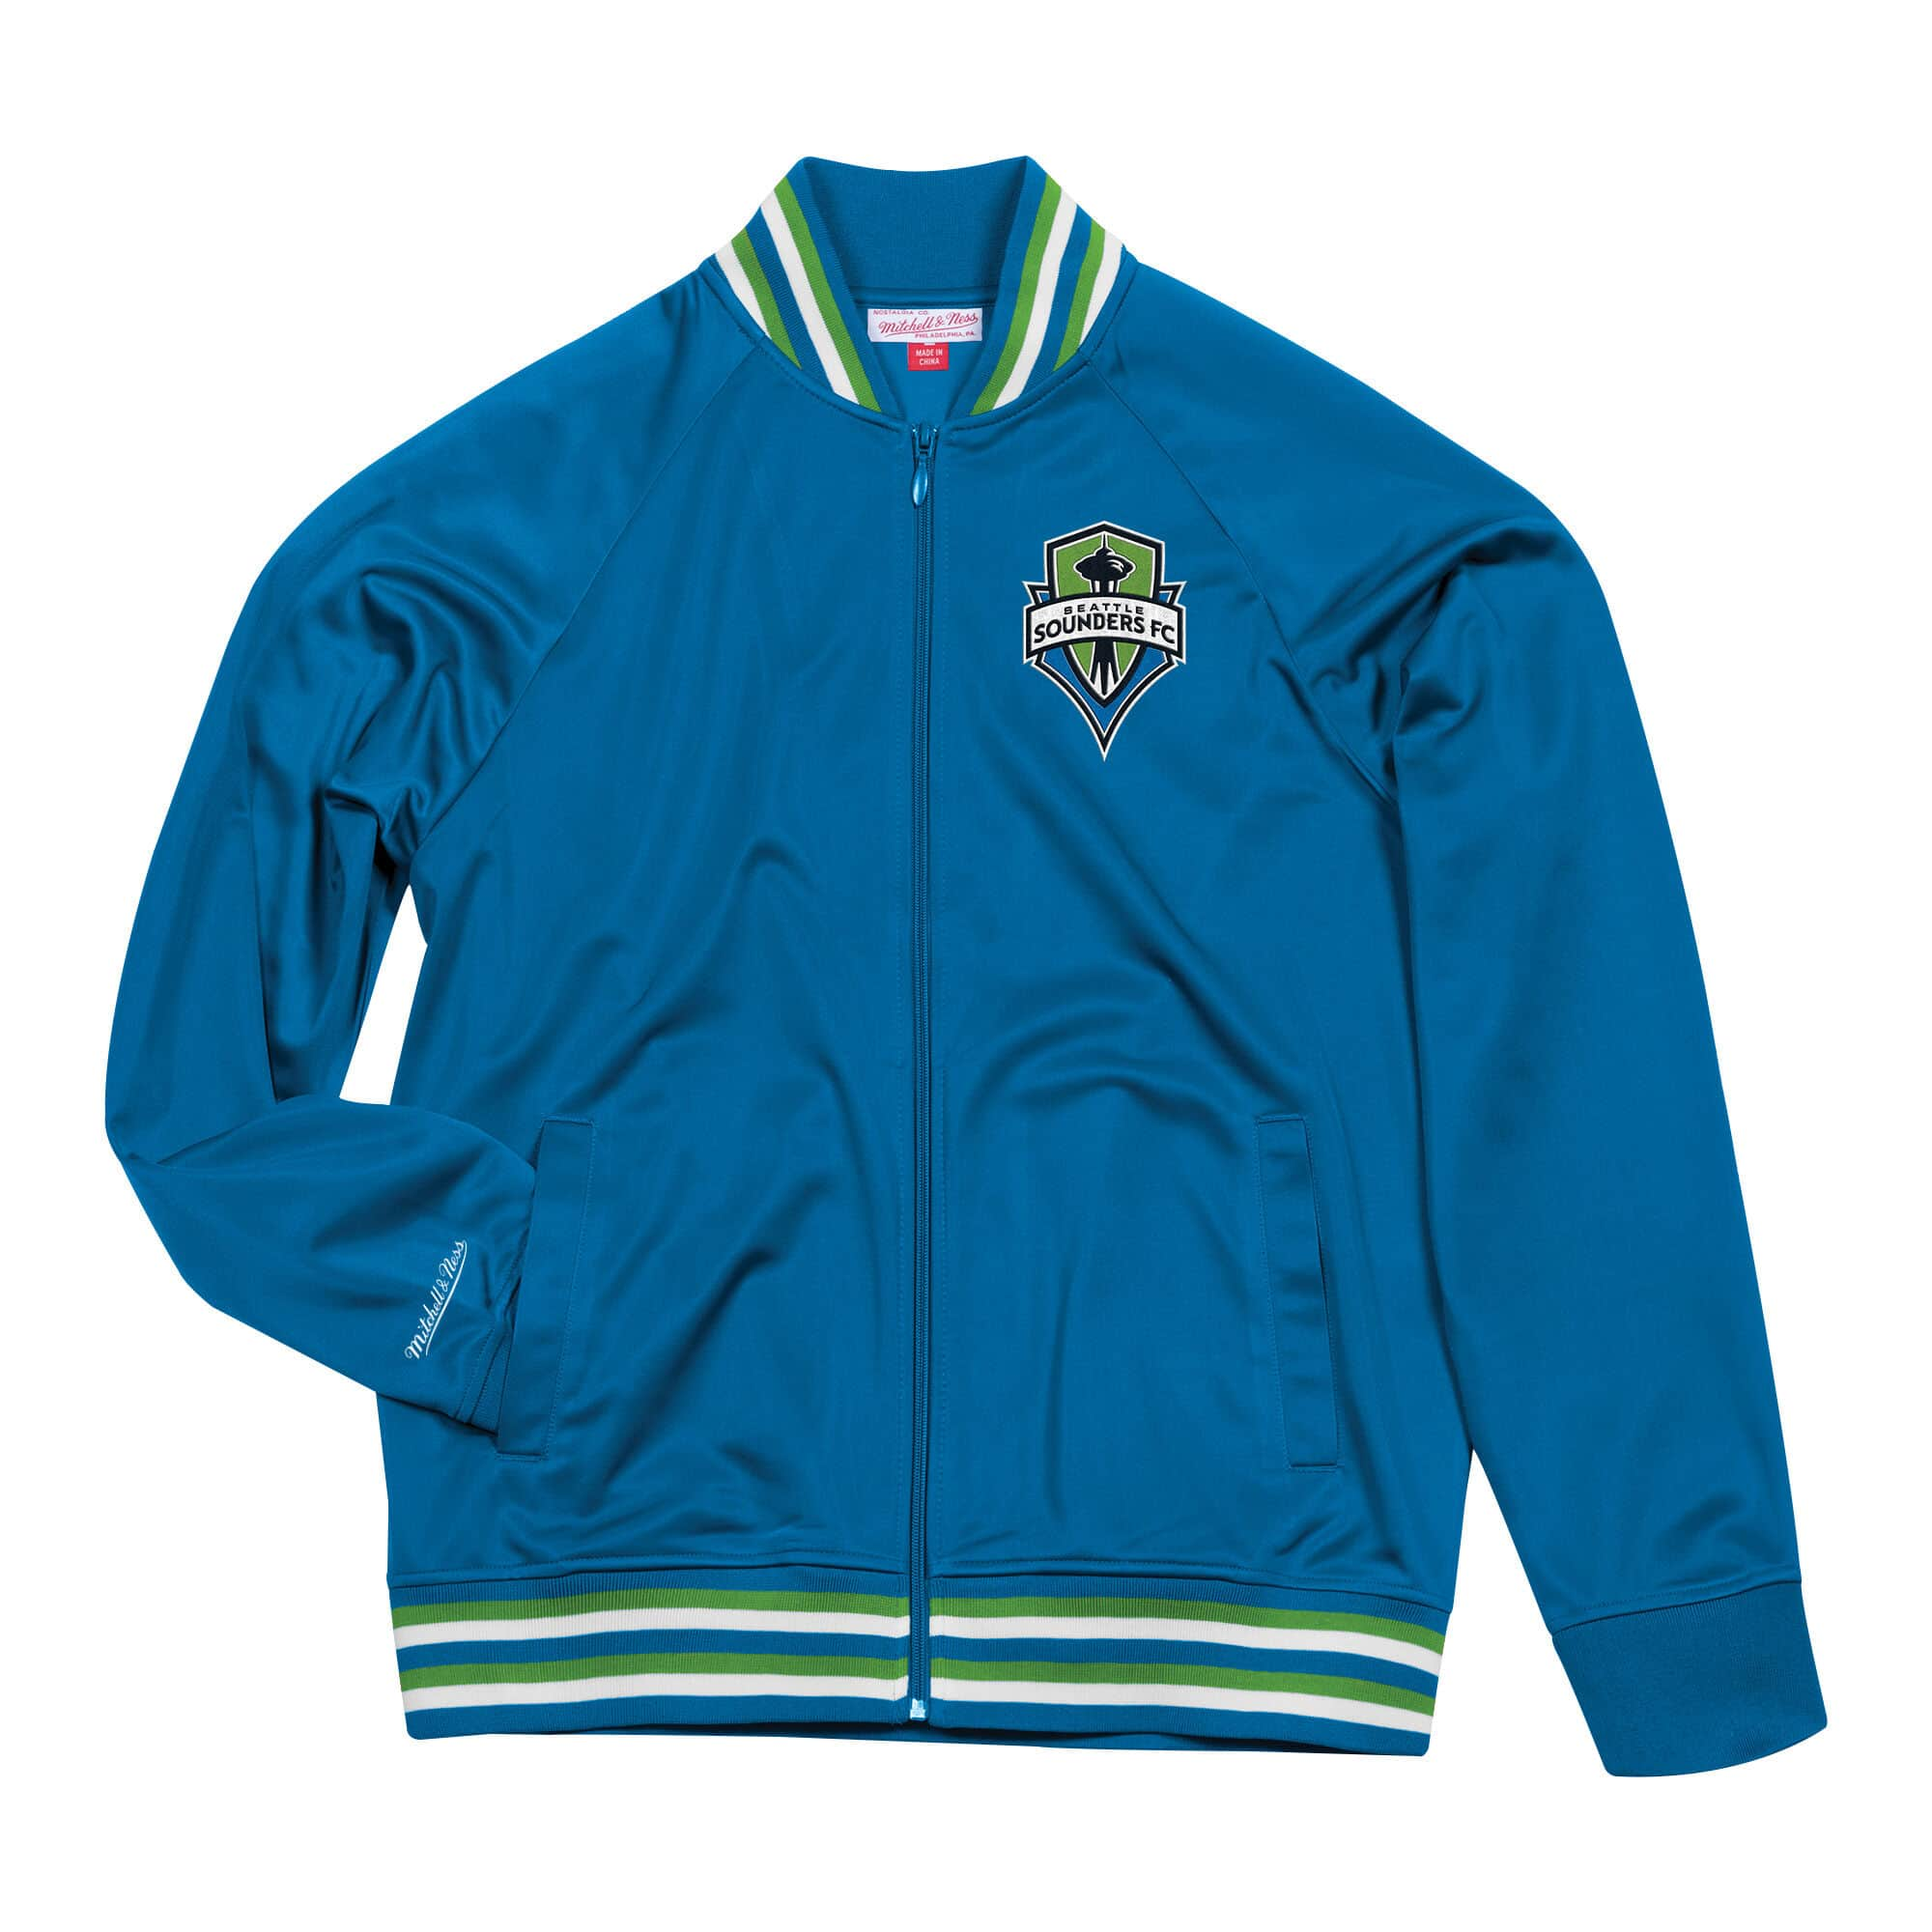 Top Prospect Jacket Seattle Sounders